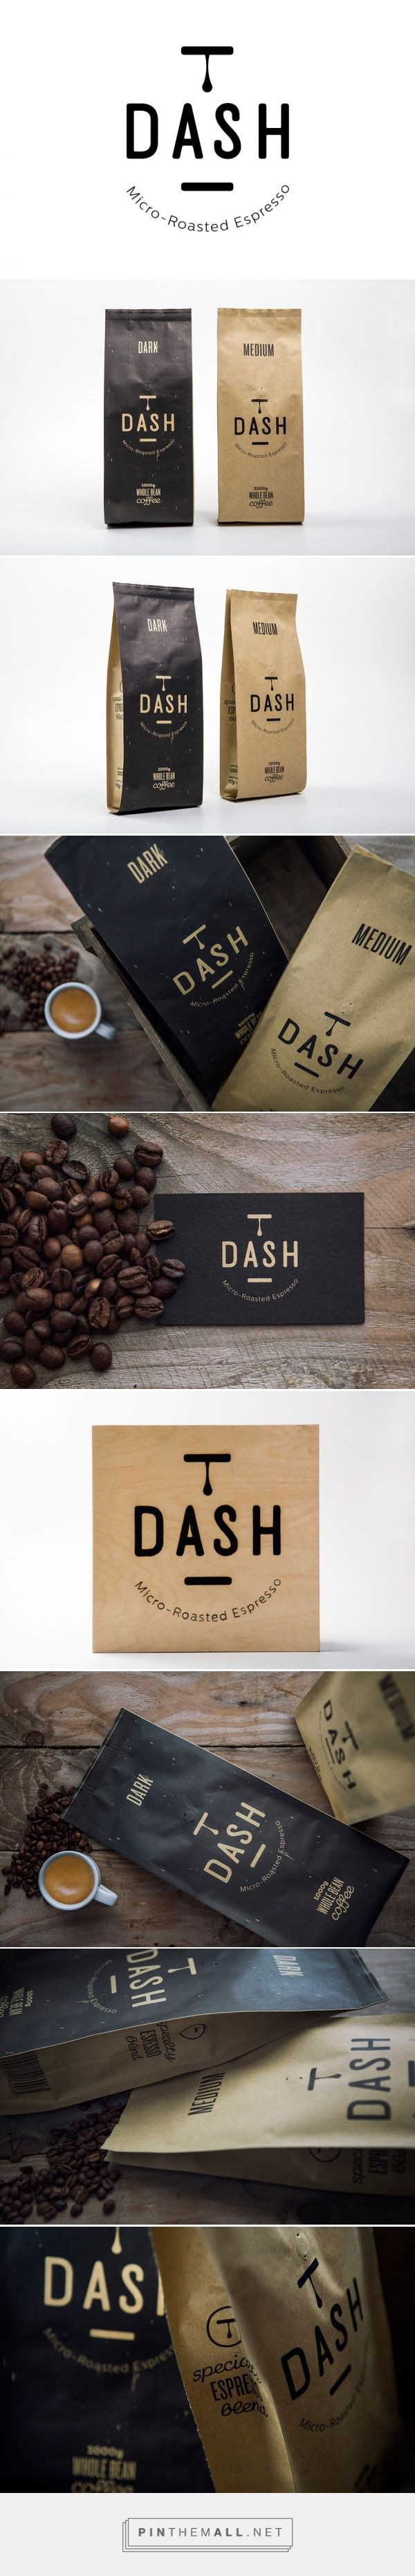 Dash Espresso packaging designed by S & Team (Greece) - http://www.packagingoftheworld.com/2016/03/dash-espresso.html